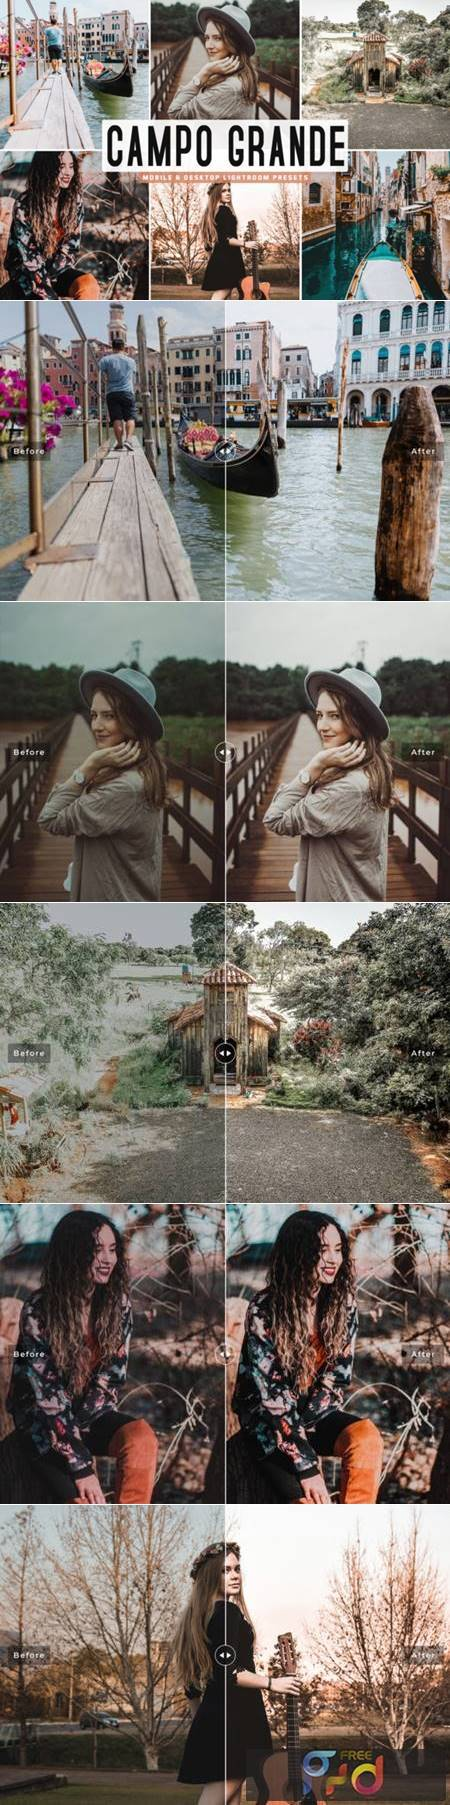 Campo Grande Lightroom Presets Pack 4140976 1